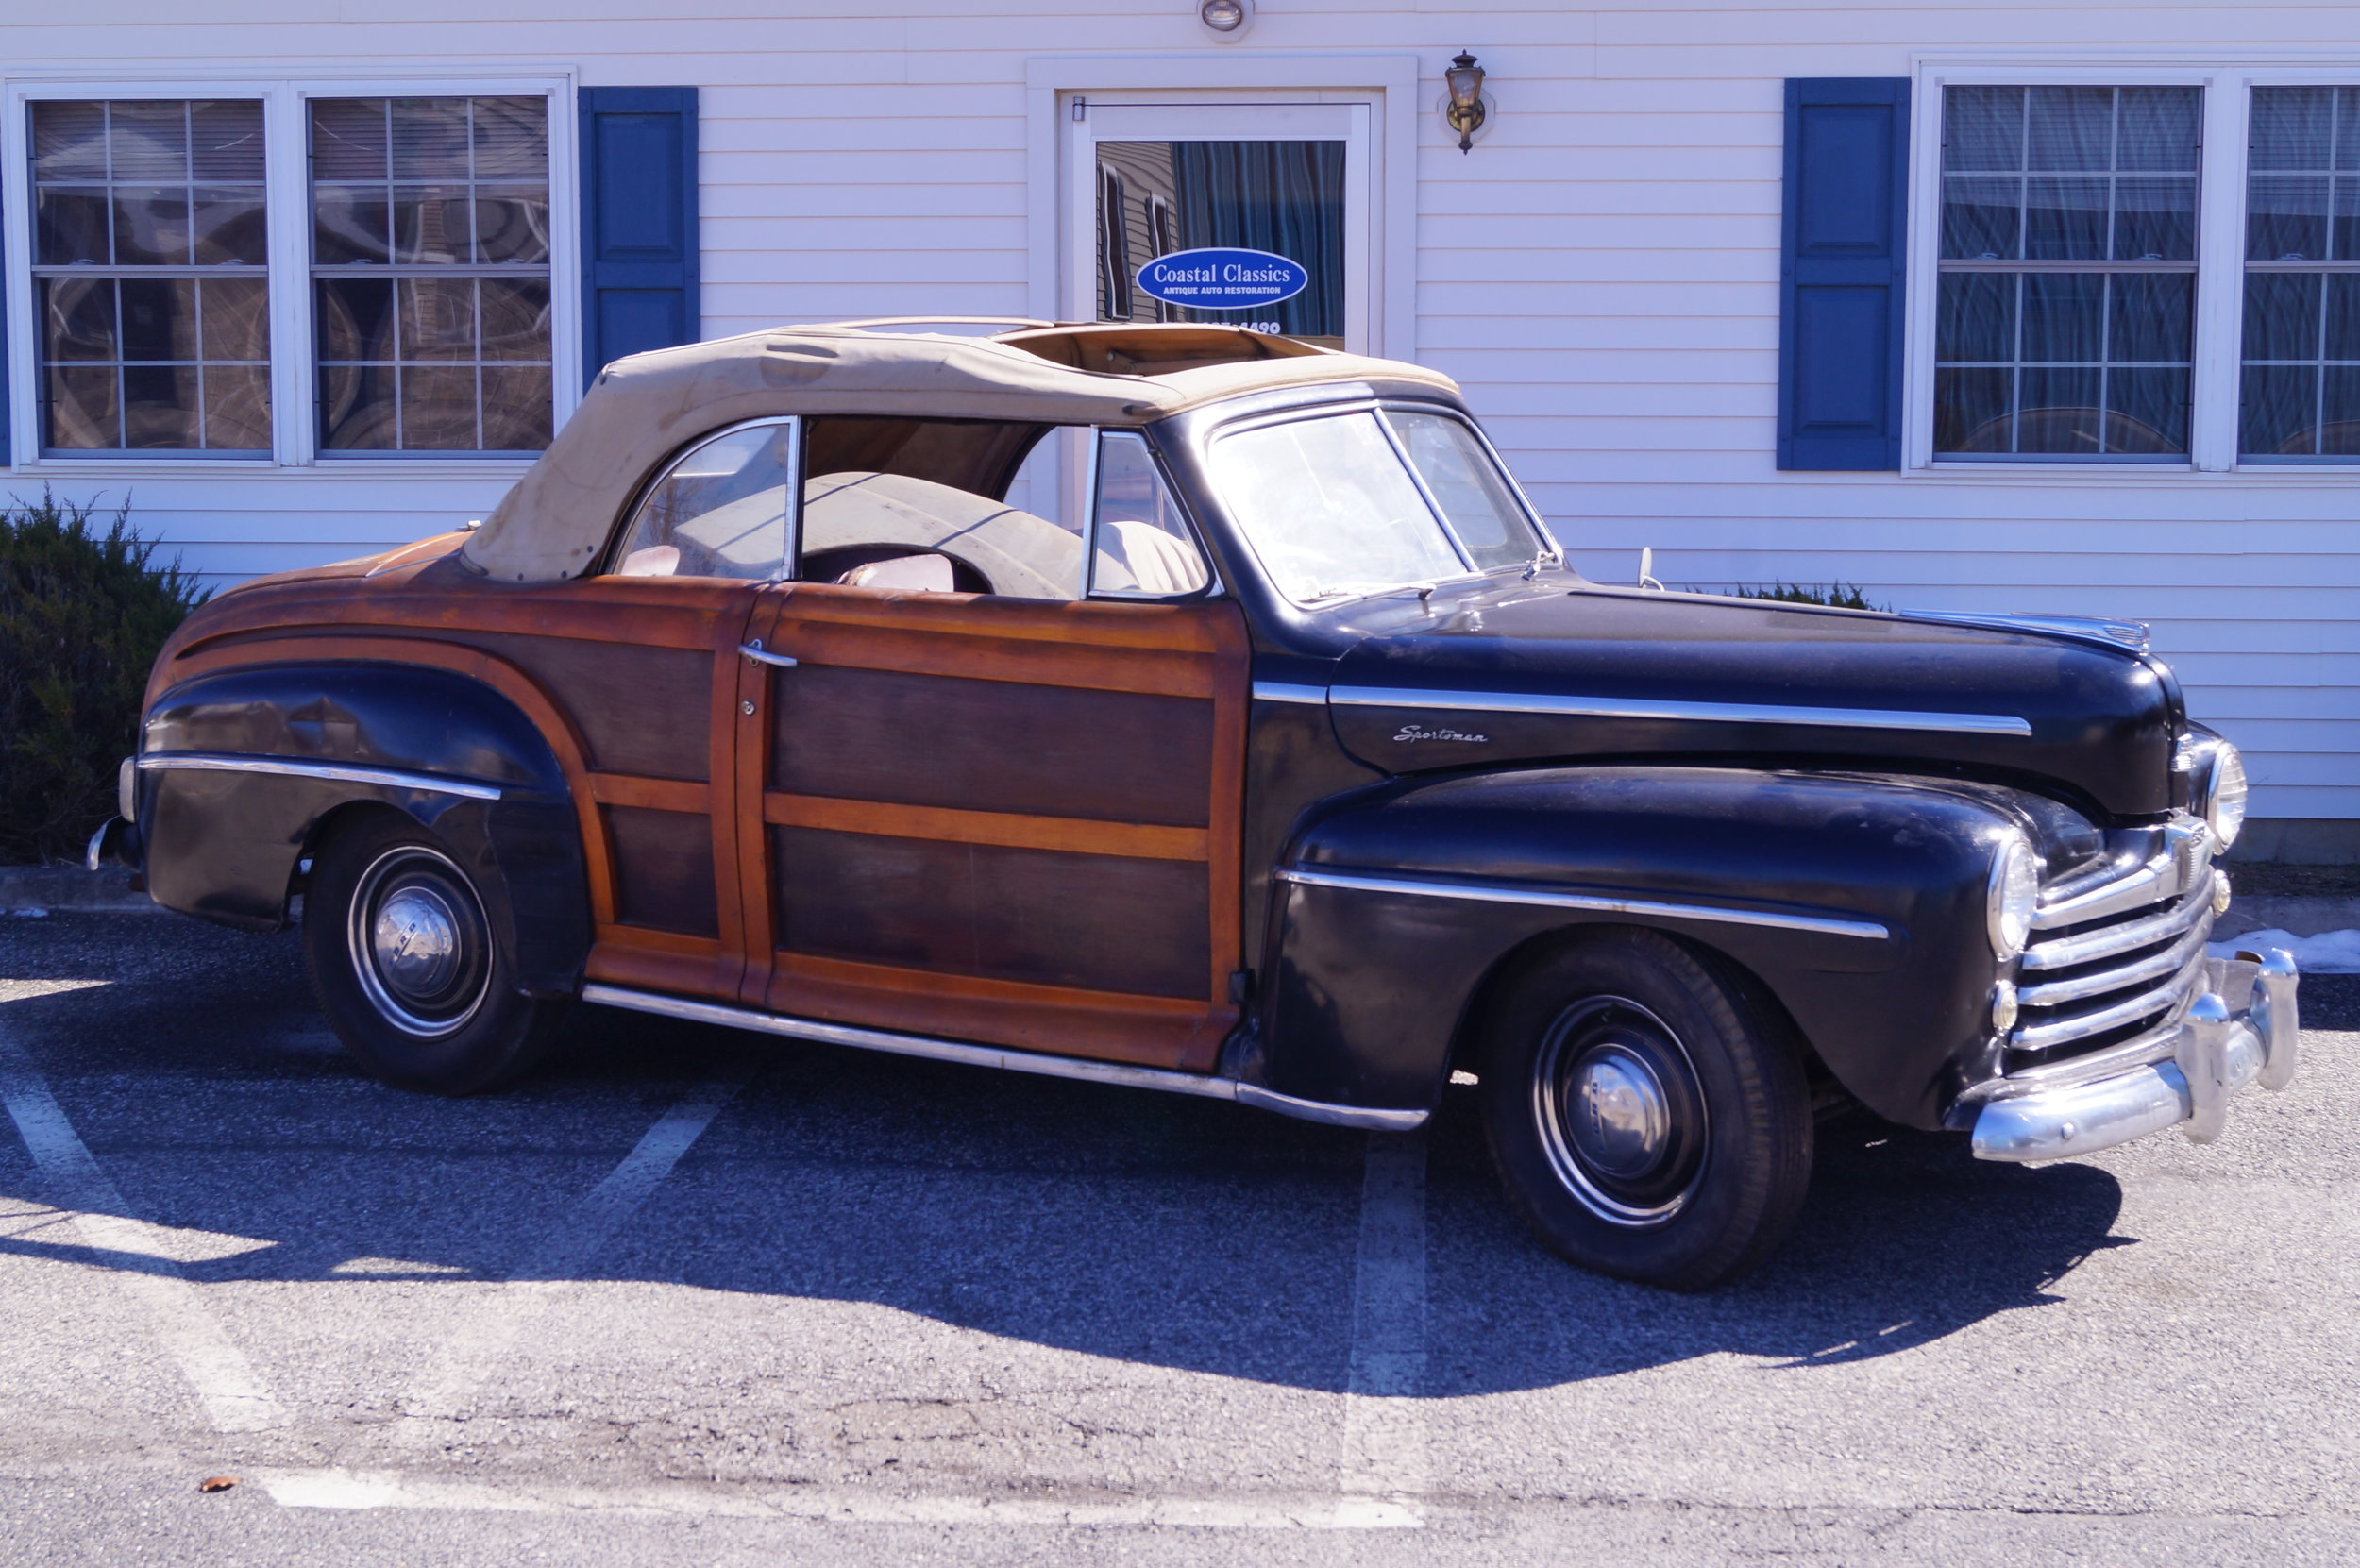 1947 Ford Sportsman - After nearly 60 years in storage, this wood-bodied convertible is currently undergoing a full, concours restoration by Coastal Classics. 2,250 Sportsmans were built in 1947, but not many survive today, making these cars quite rare and valuable. The wood used for these cars were a marine-grade mahogany plywood for the center section inserts, and either a maple or birch for the surrounding wood. In the case of this car, birch was the type of wood used. Please check back for completed pictures, or schedule a tour of our shop to see the restoration of this special automobile in person.